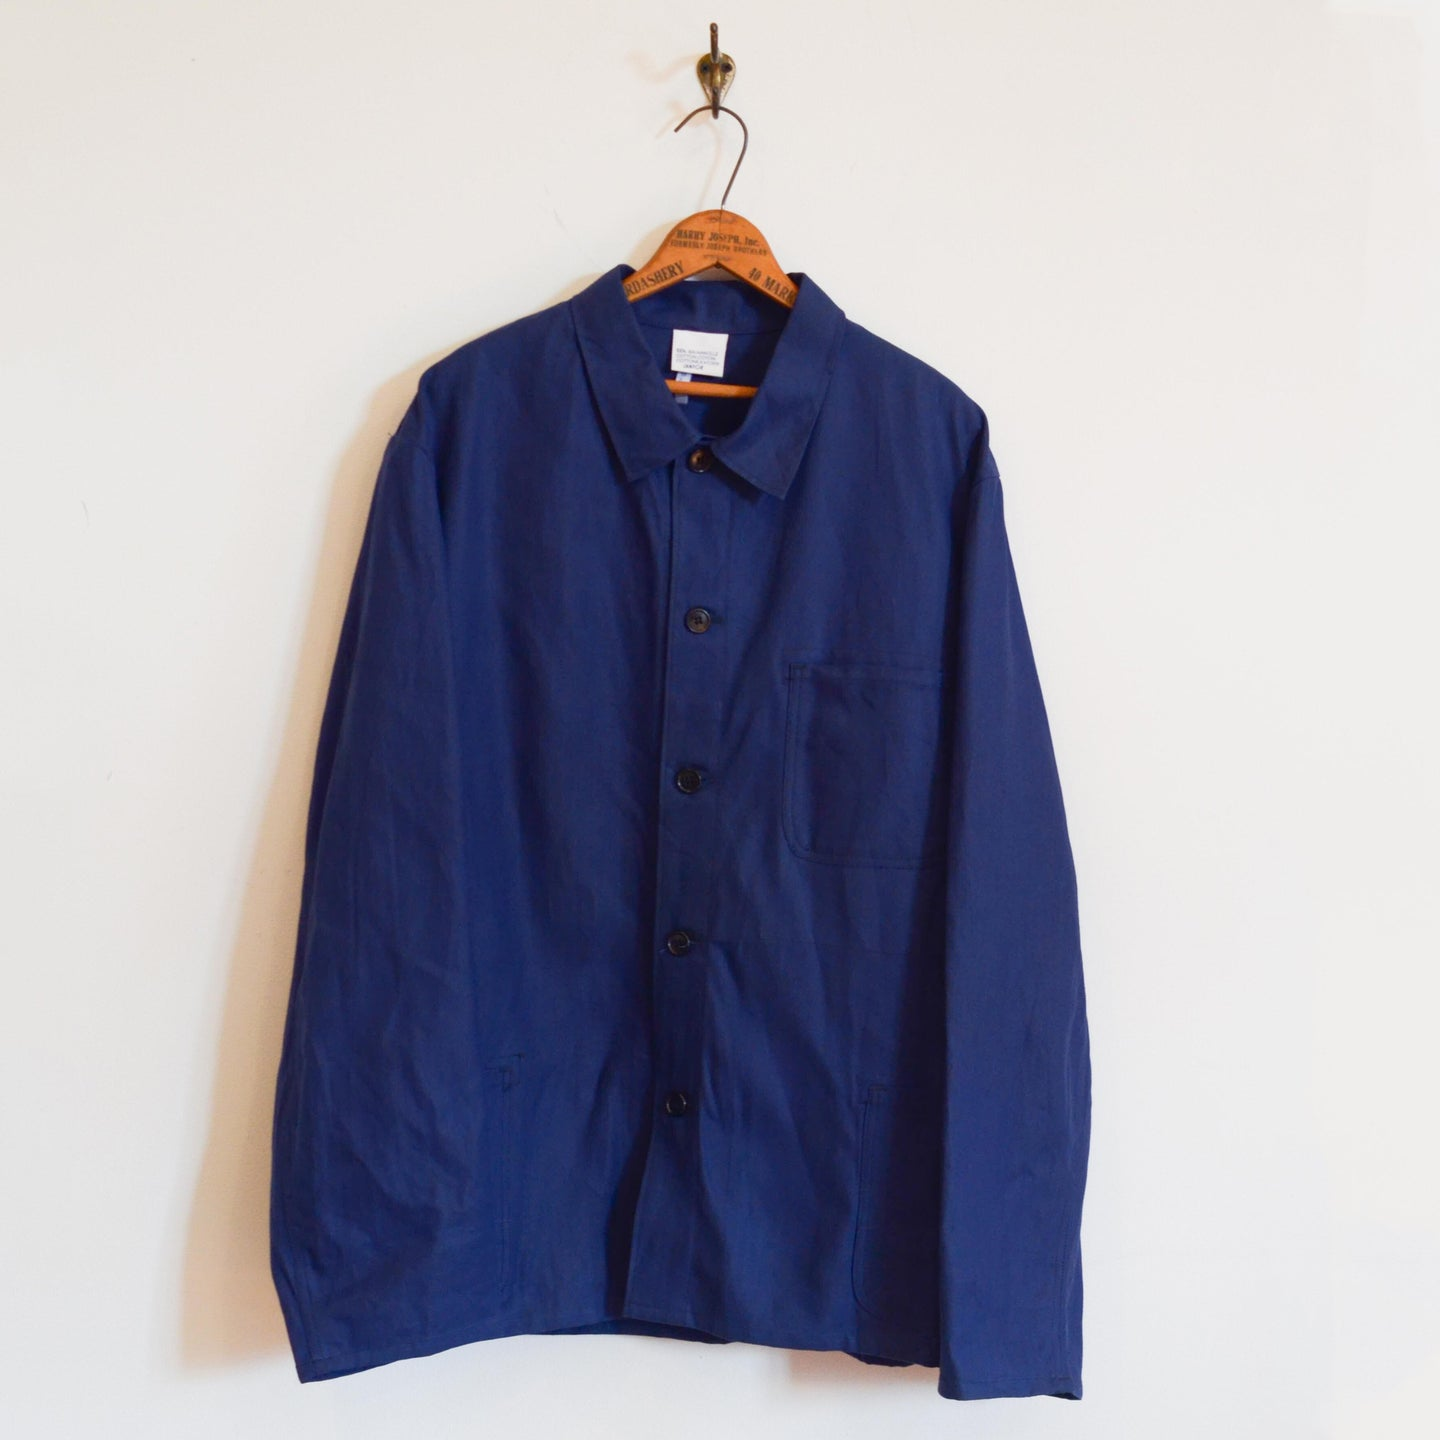 BP - German HBT Work Jacket